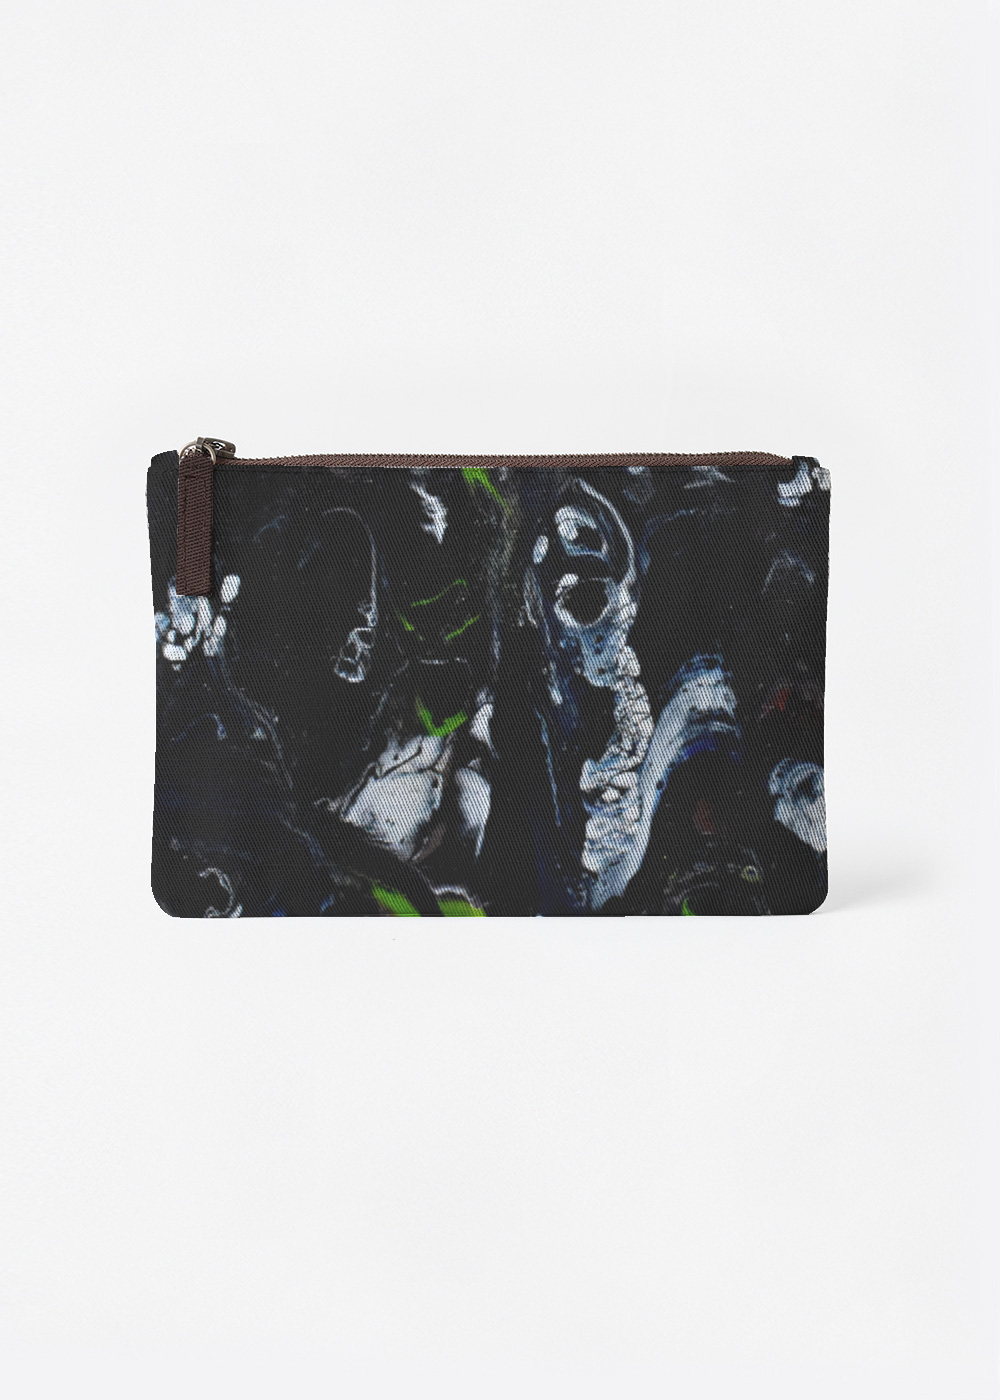 Statement Clutch - RVE MAKE ART SML CLUTCH by VIDA VIDA Visit New Cheap Sale Reliable Recommend Discount Cheap Sale Discounts Outlet Very Cheap z9ioWDhh